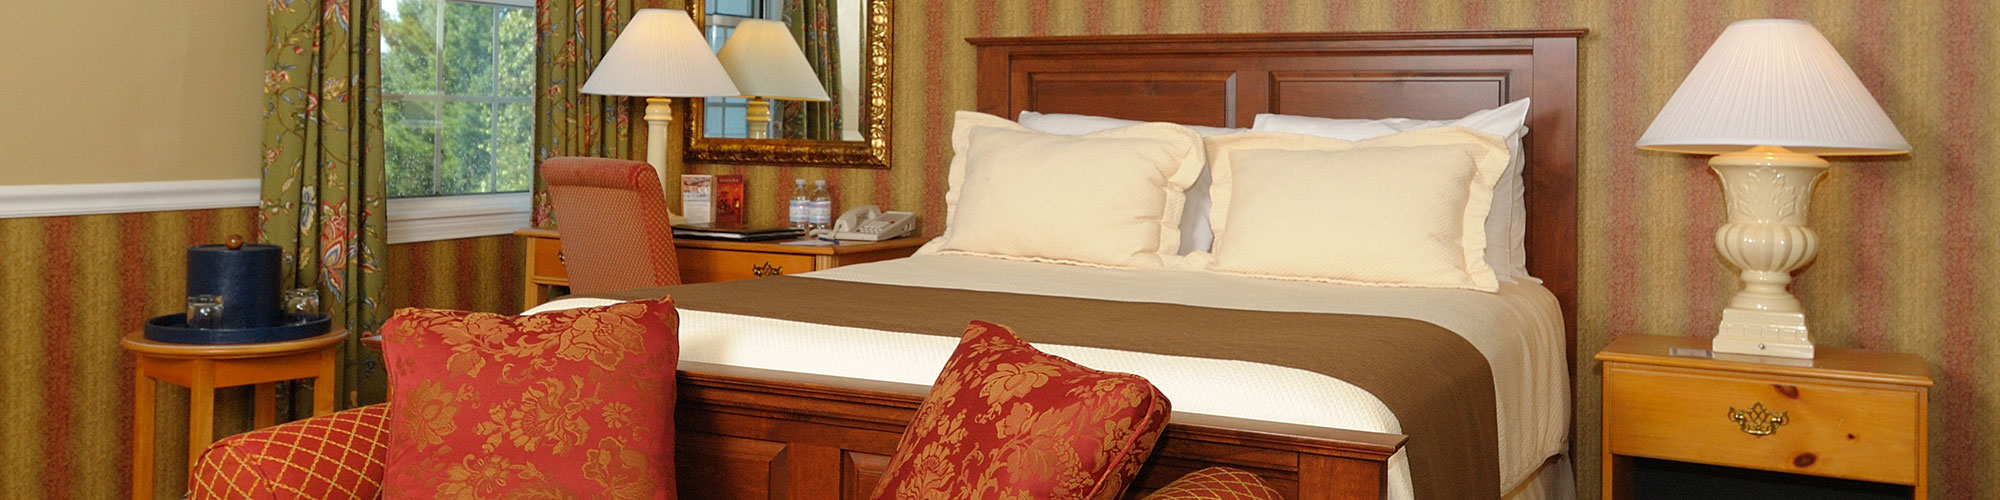 hotel remodeling companies chicago